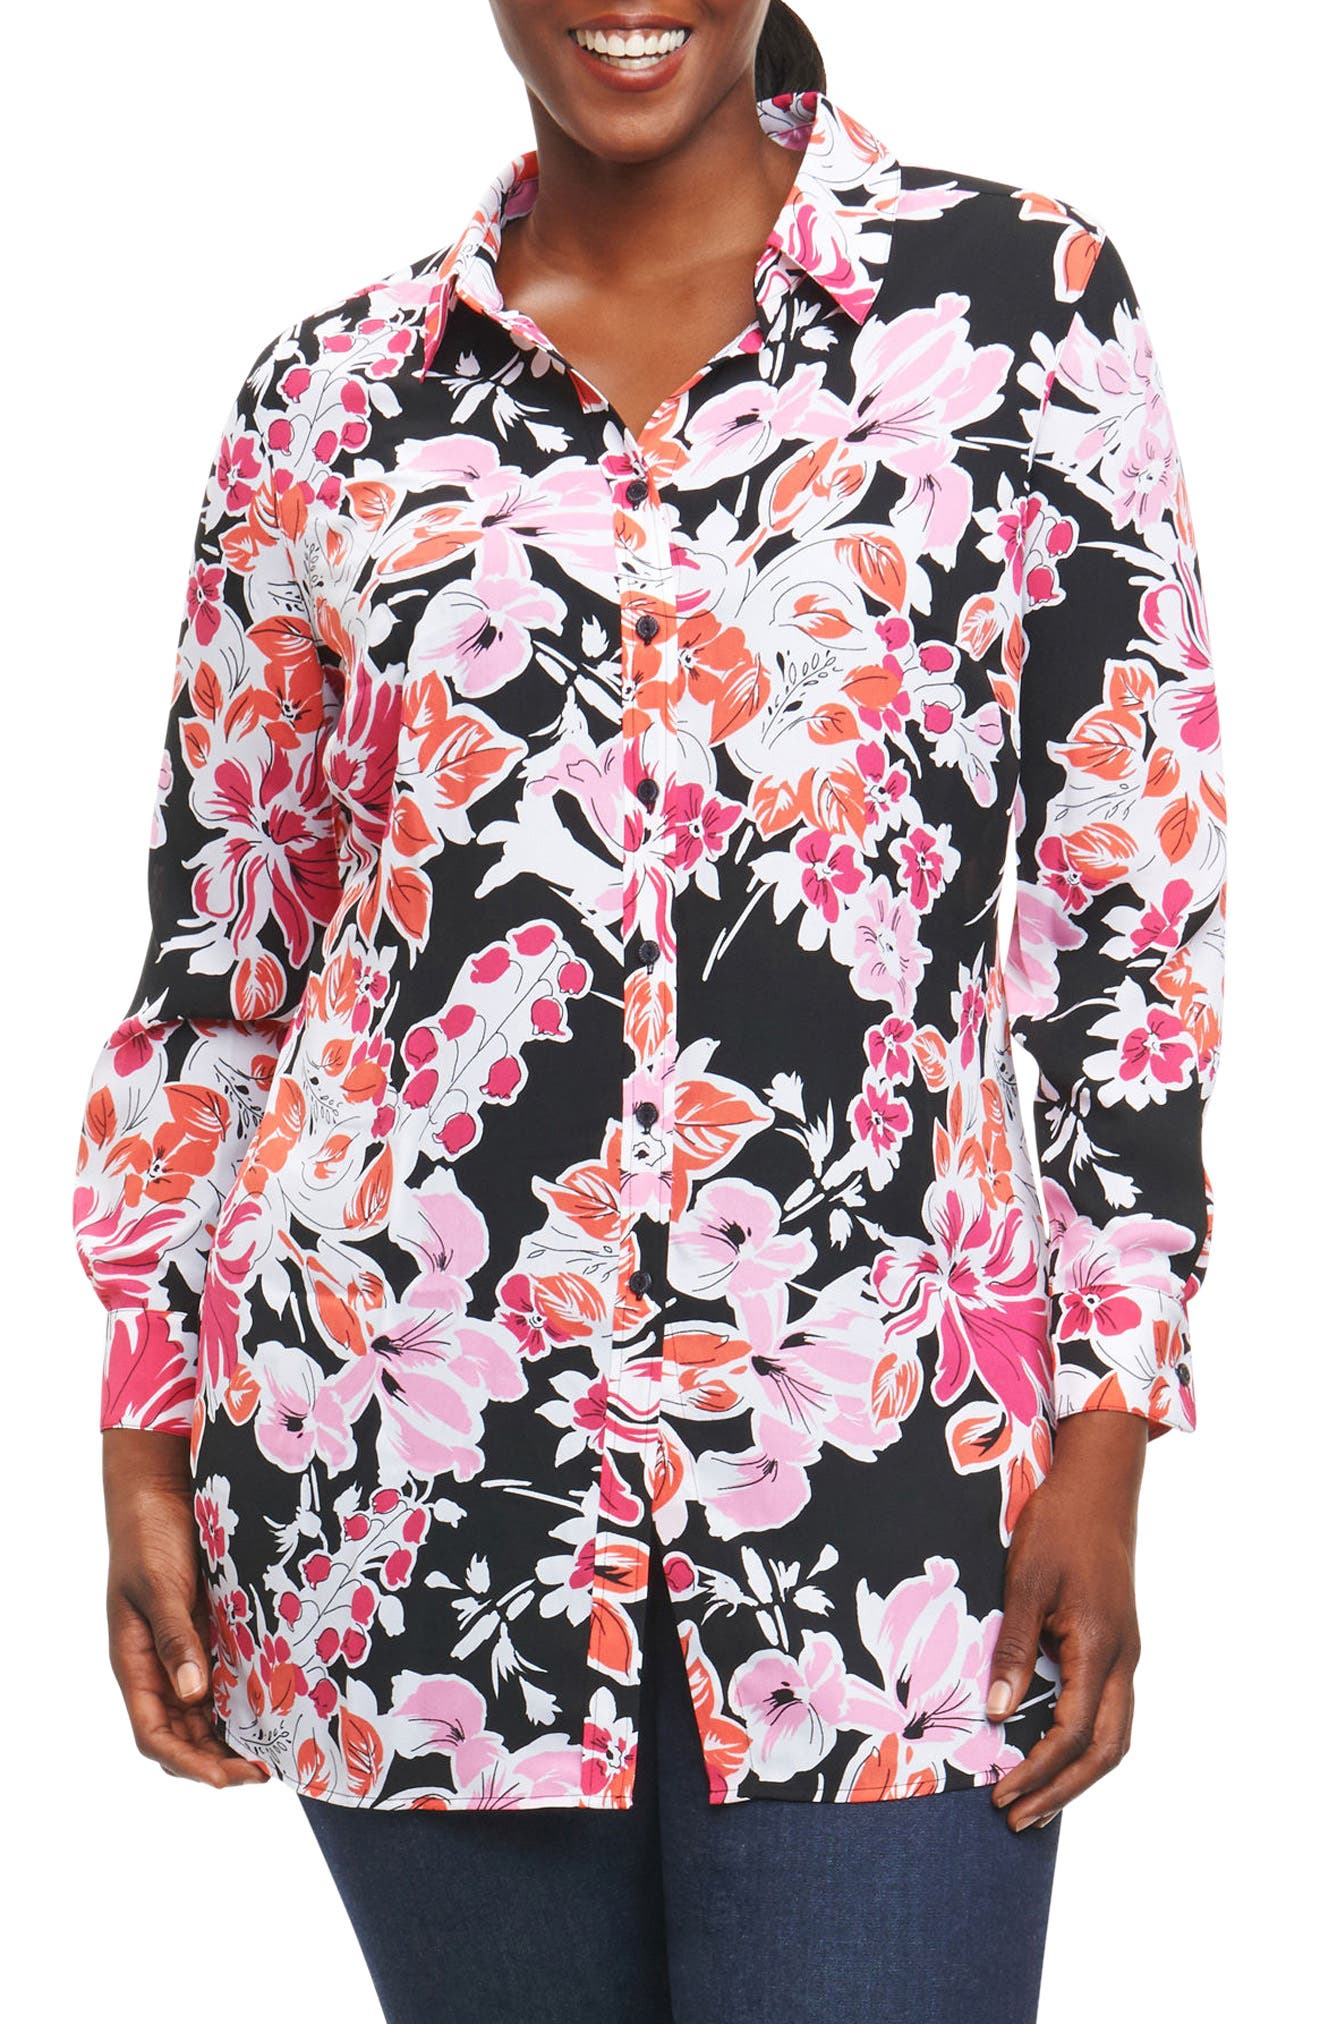 Alternate Image 1 Selected - Foxcroft Jade Blooming Floral Tunic (Plus Size)